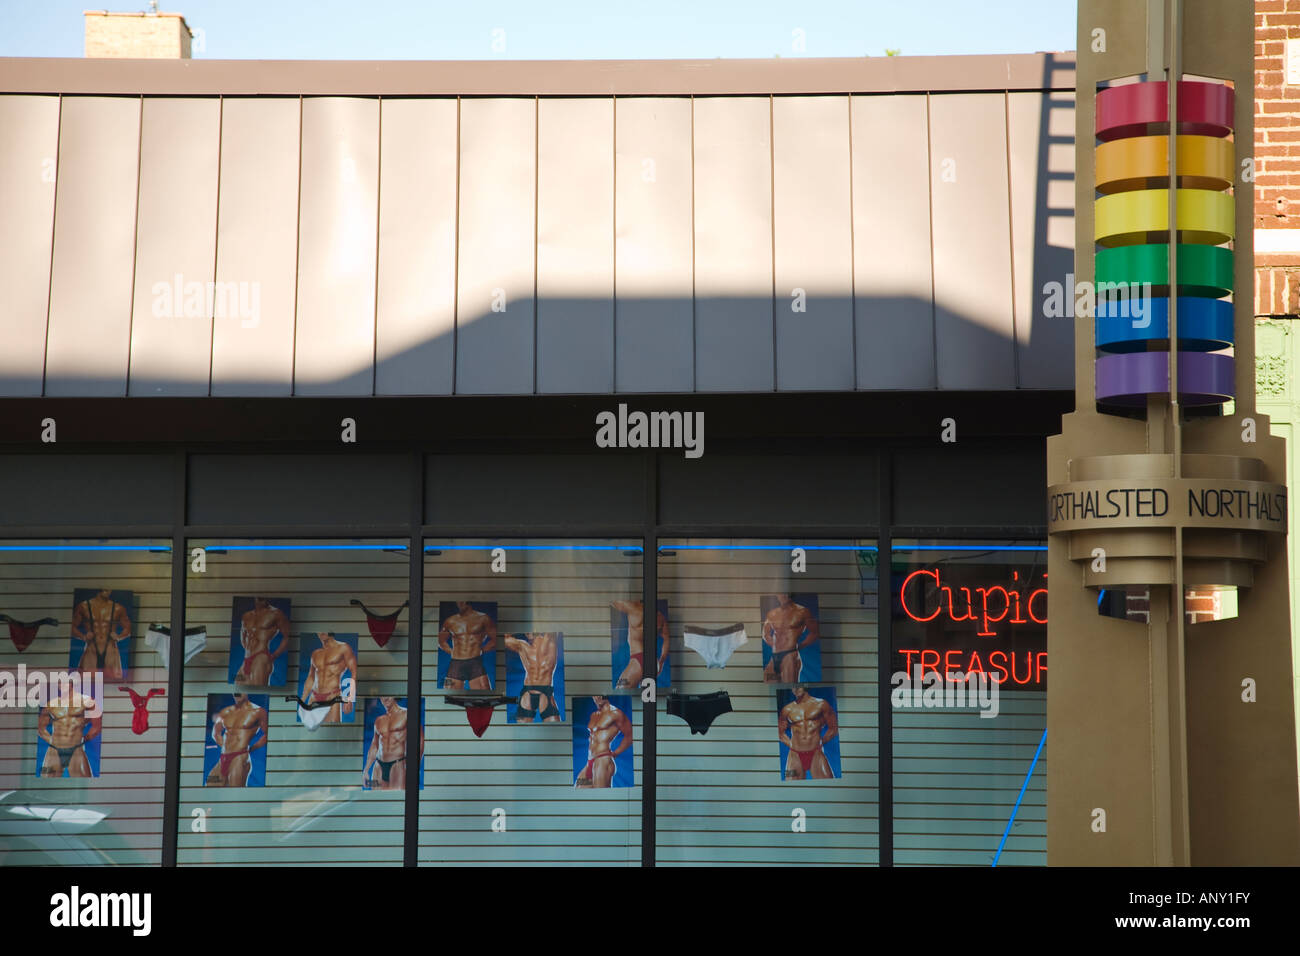 ILLINOIS Chicago Mens underwear and lingerie displayed in retail store  window rainbow colored pylon in North Halsted area e520000cc153